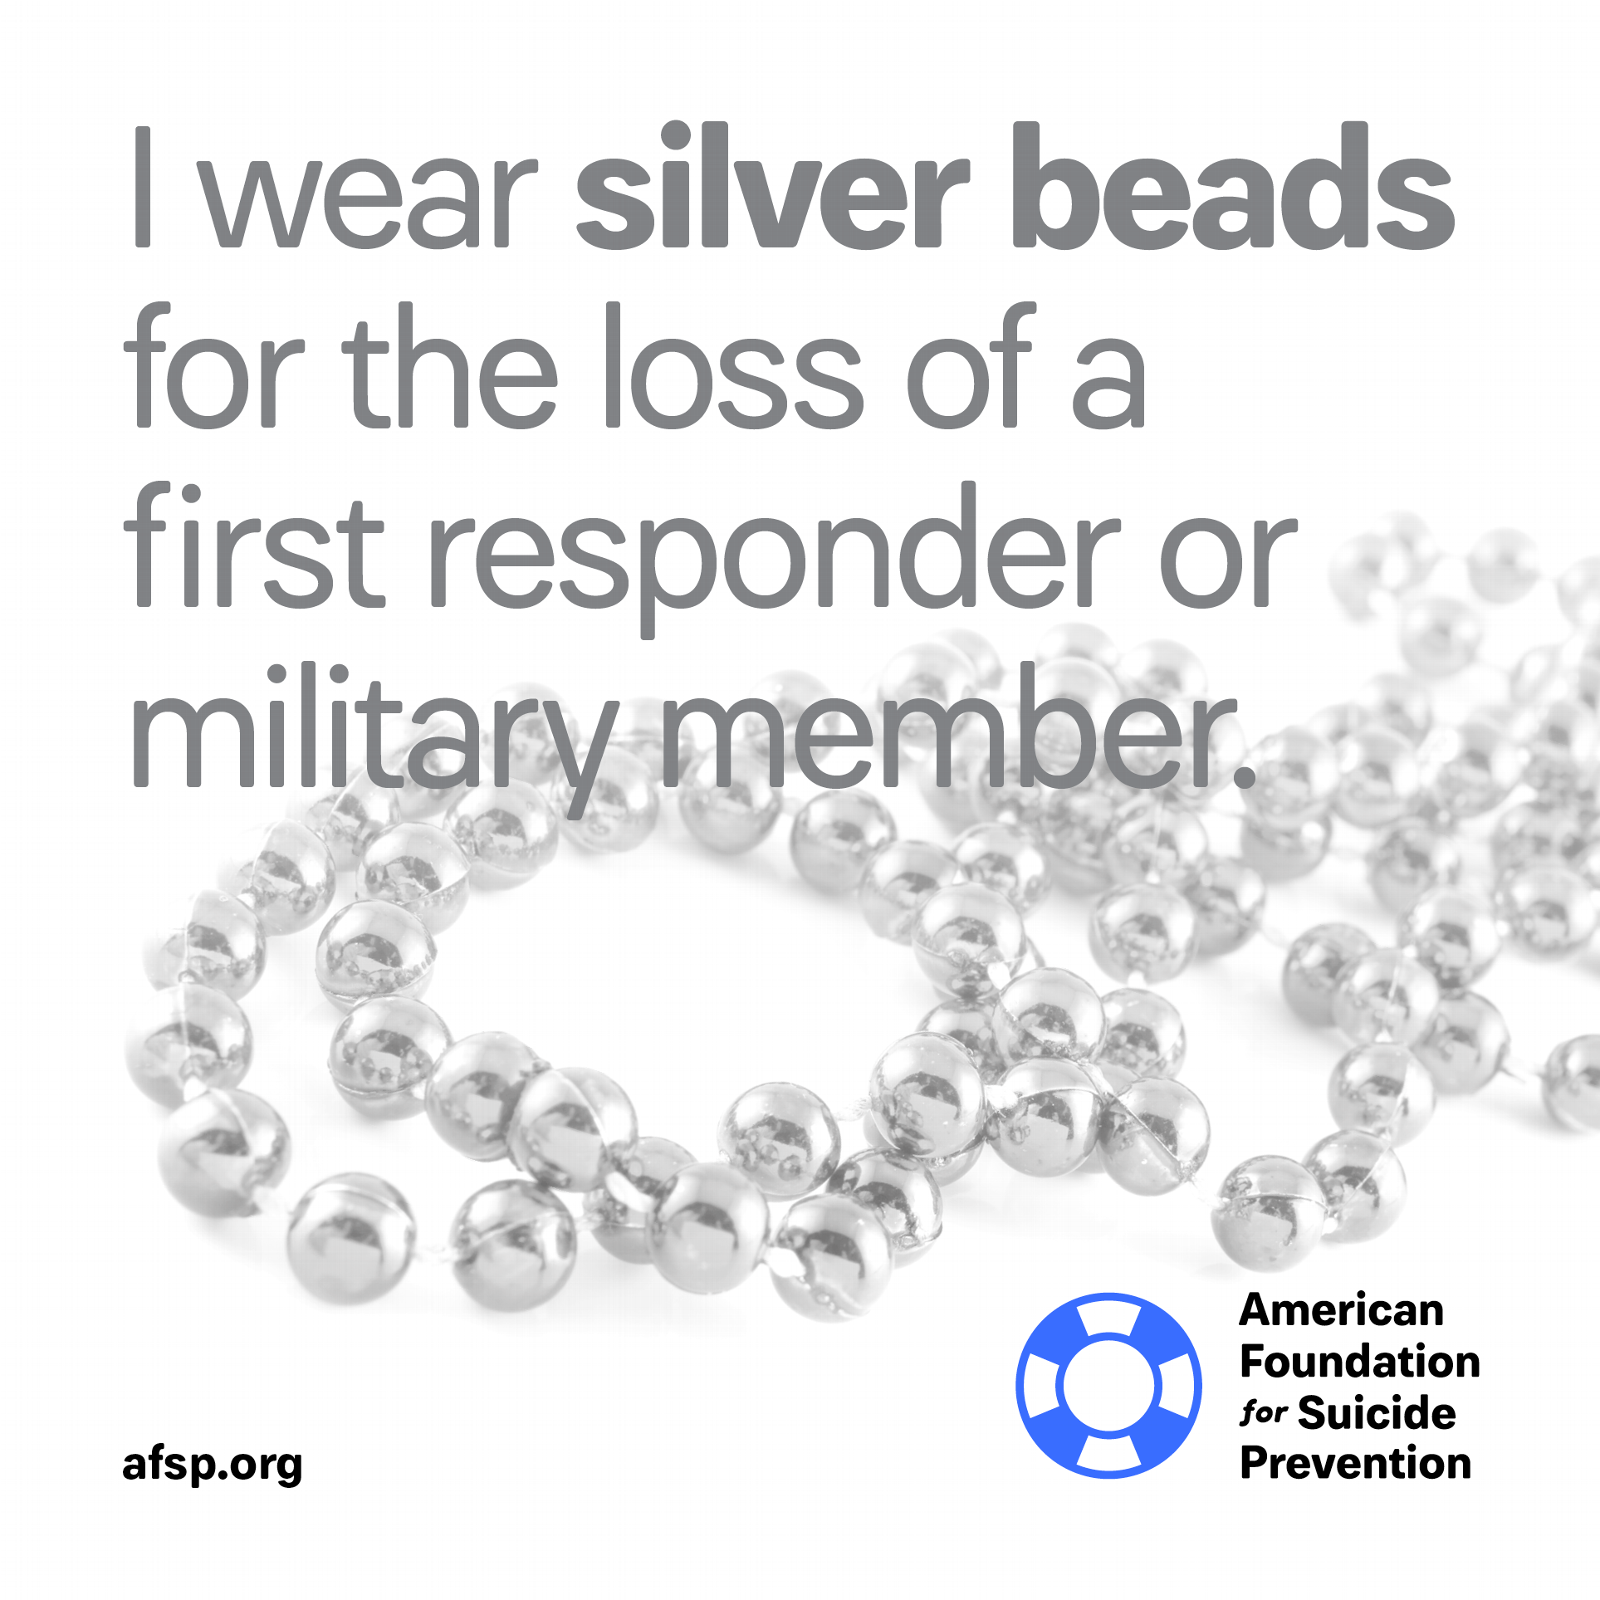 Silver beads for the loss of a first responder or military member